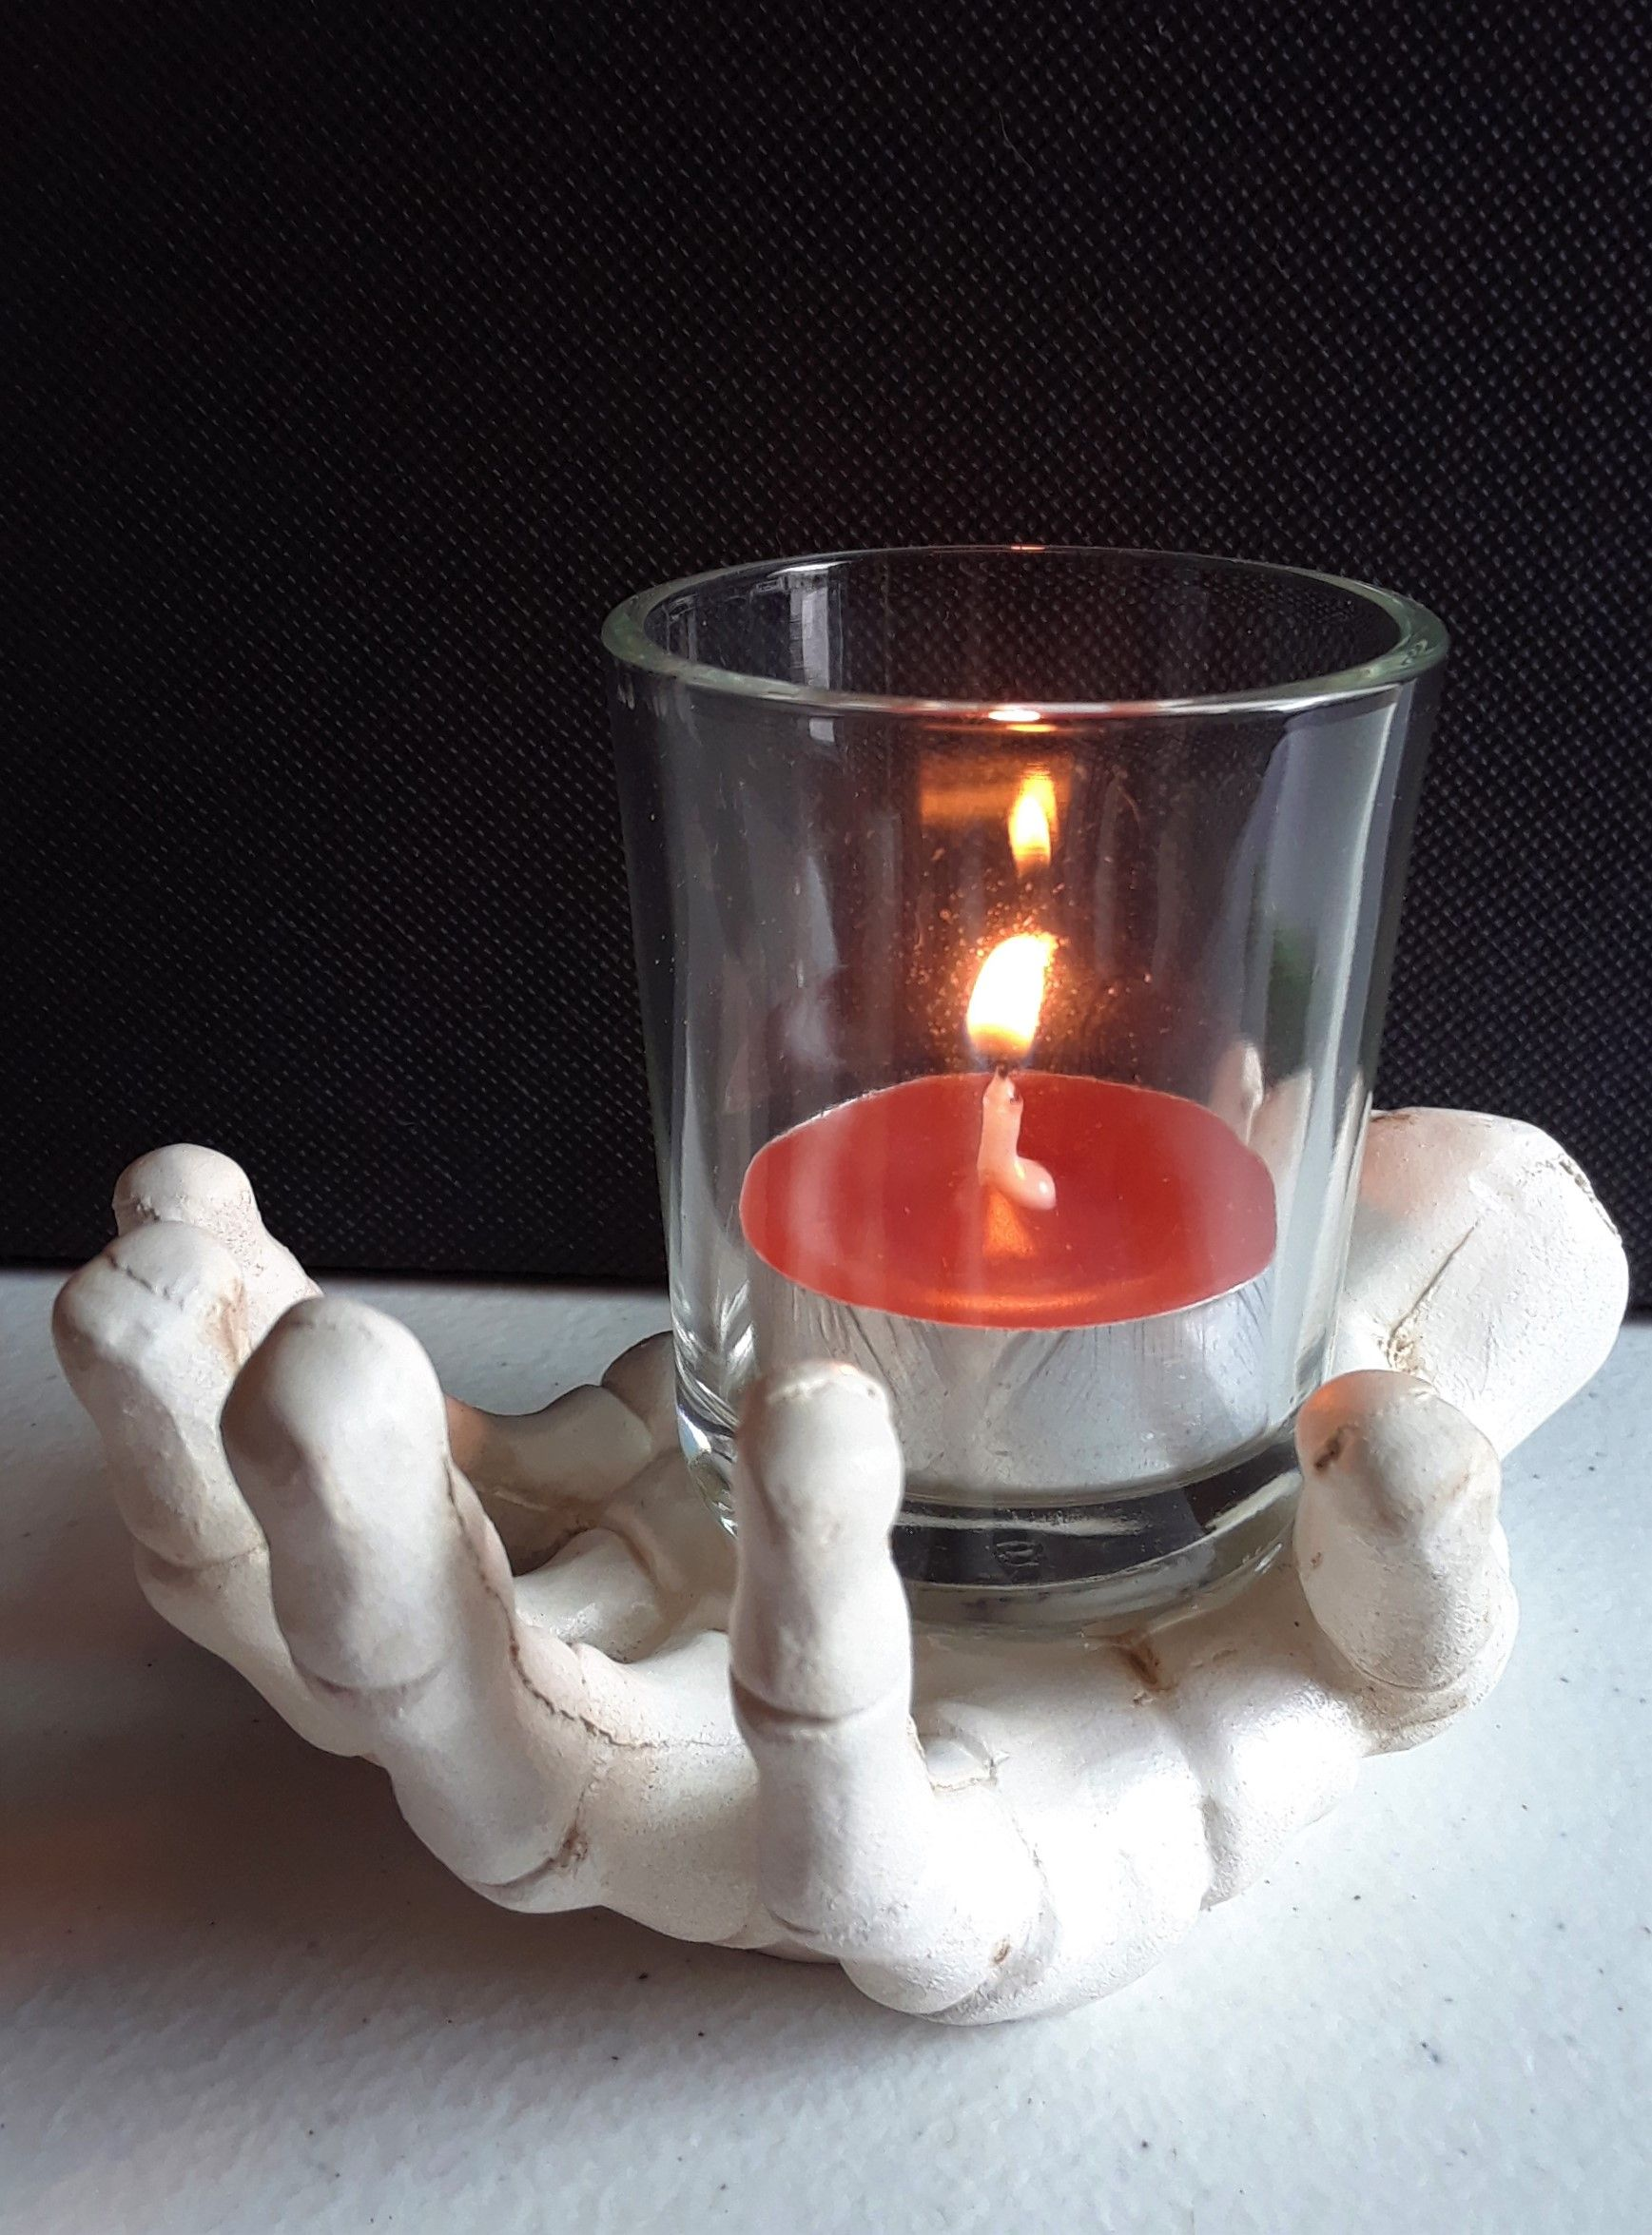 Burning candles cast an eerie shadow in these creepy